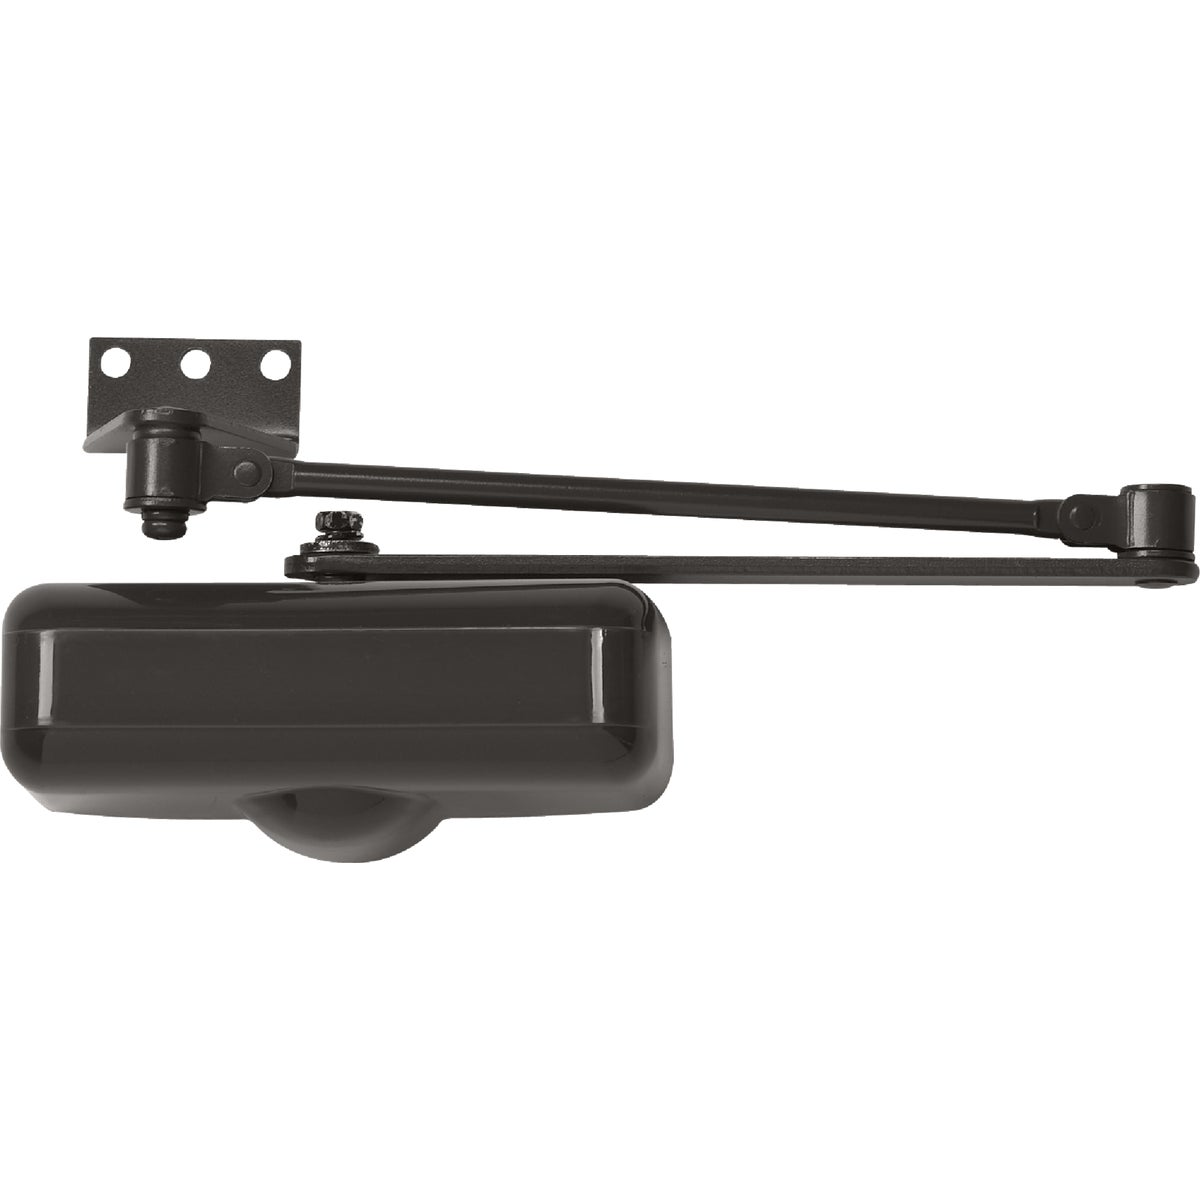 BROWN HO RES DOOR CLOSER - DC100080 by Tell Mfg Inc